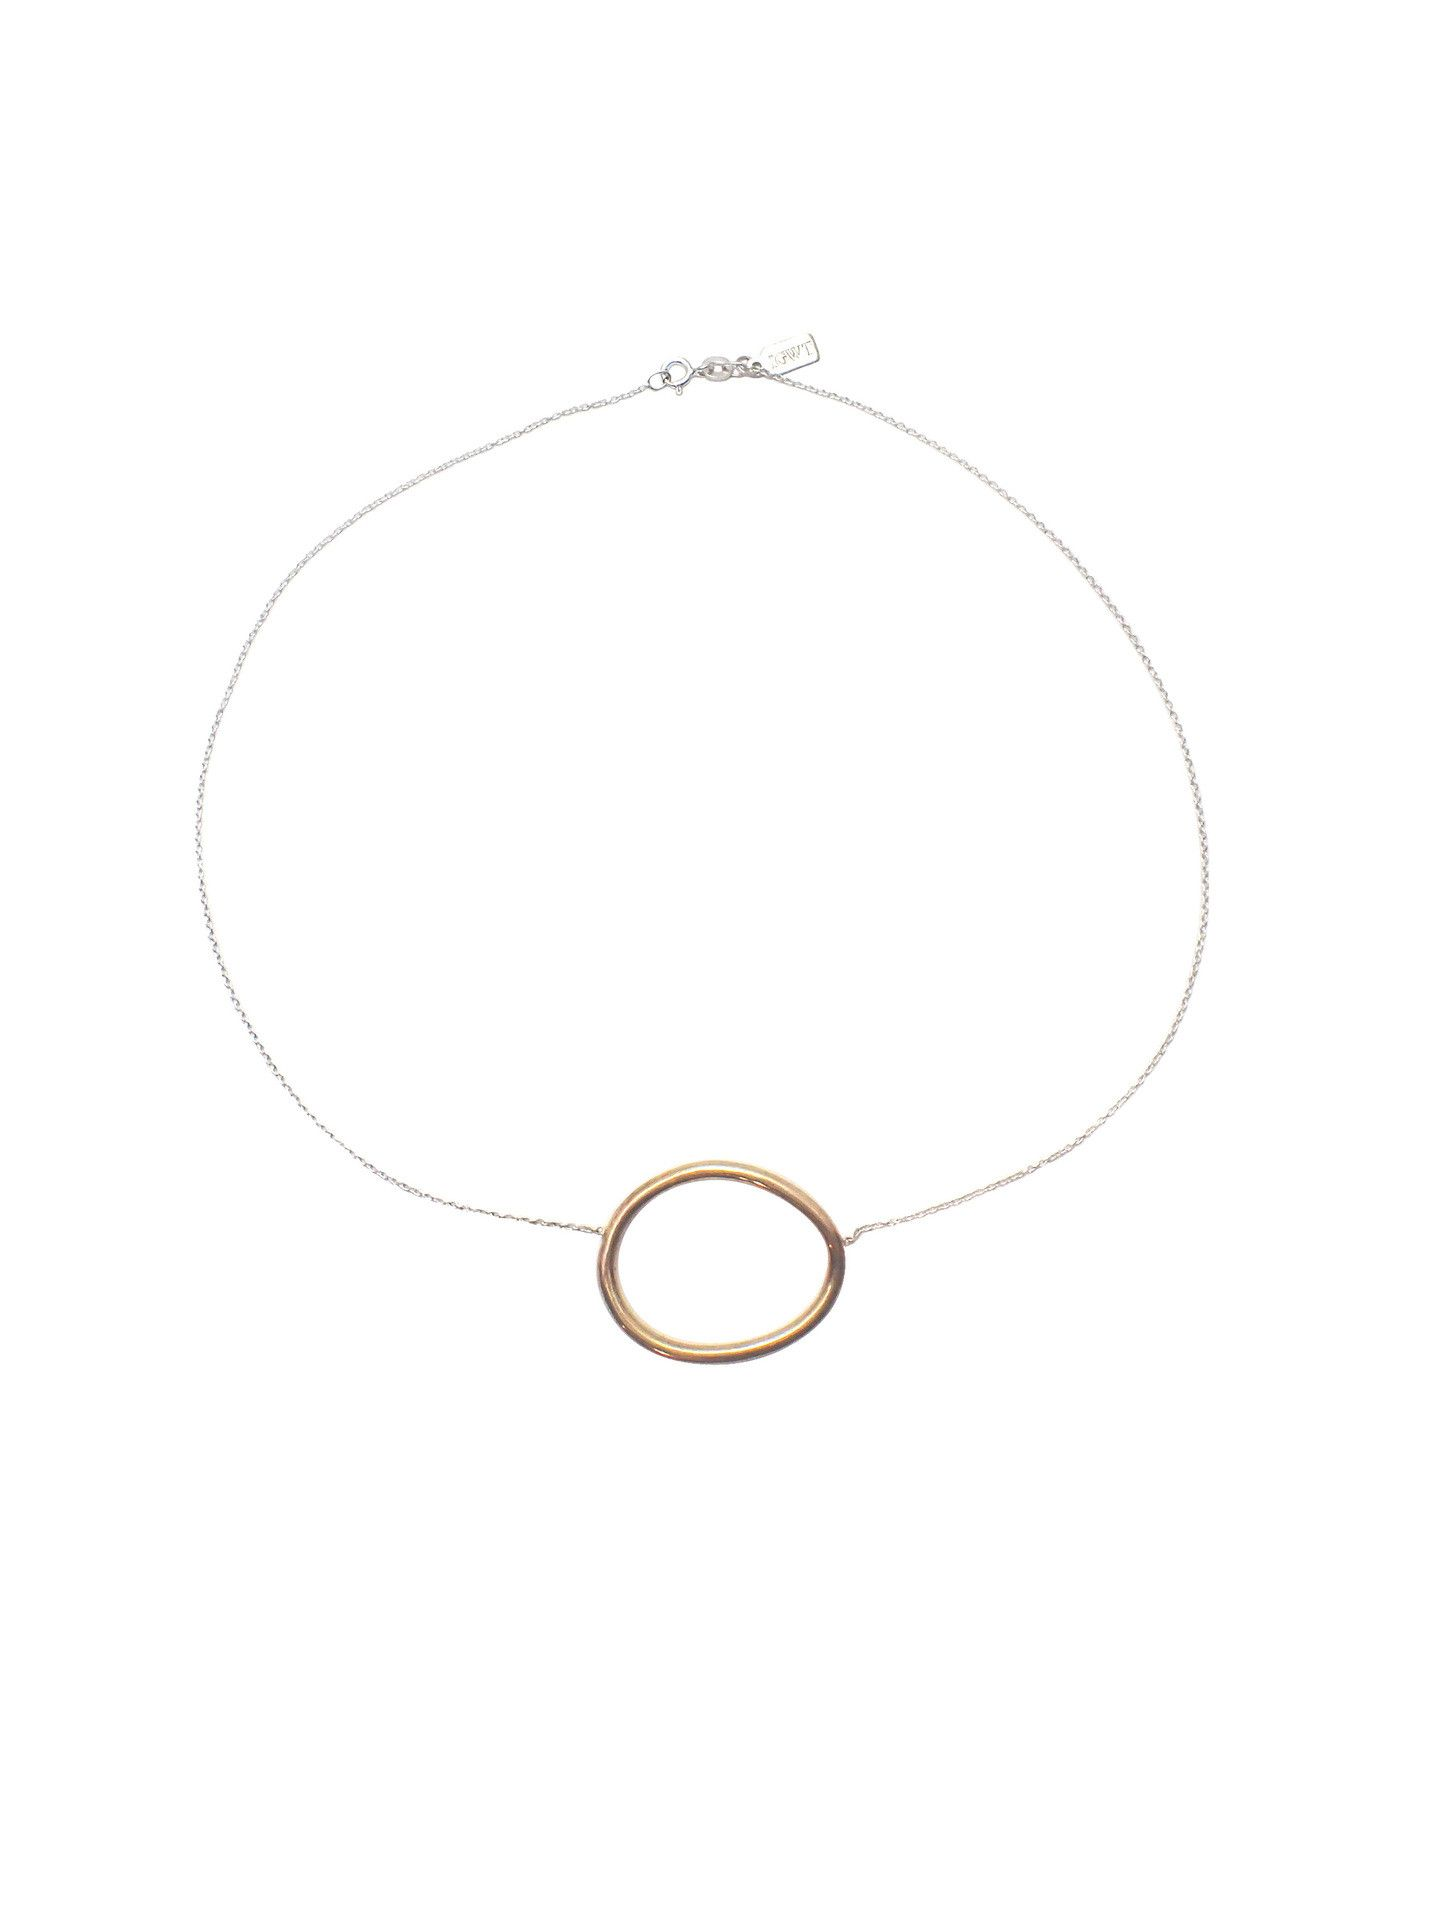 Cory Short Necklace / Brass  Organically shaped brass ring on a sterling silver chain. Made in New York City. Independent design. NYC style. Modernist, minimal jewelry. Handmade jewelry.